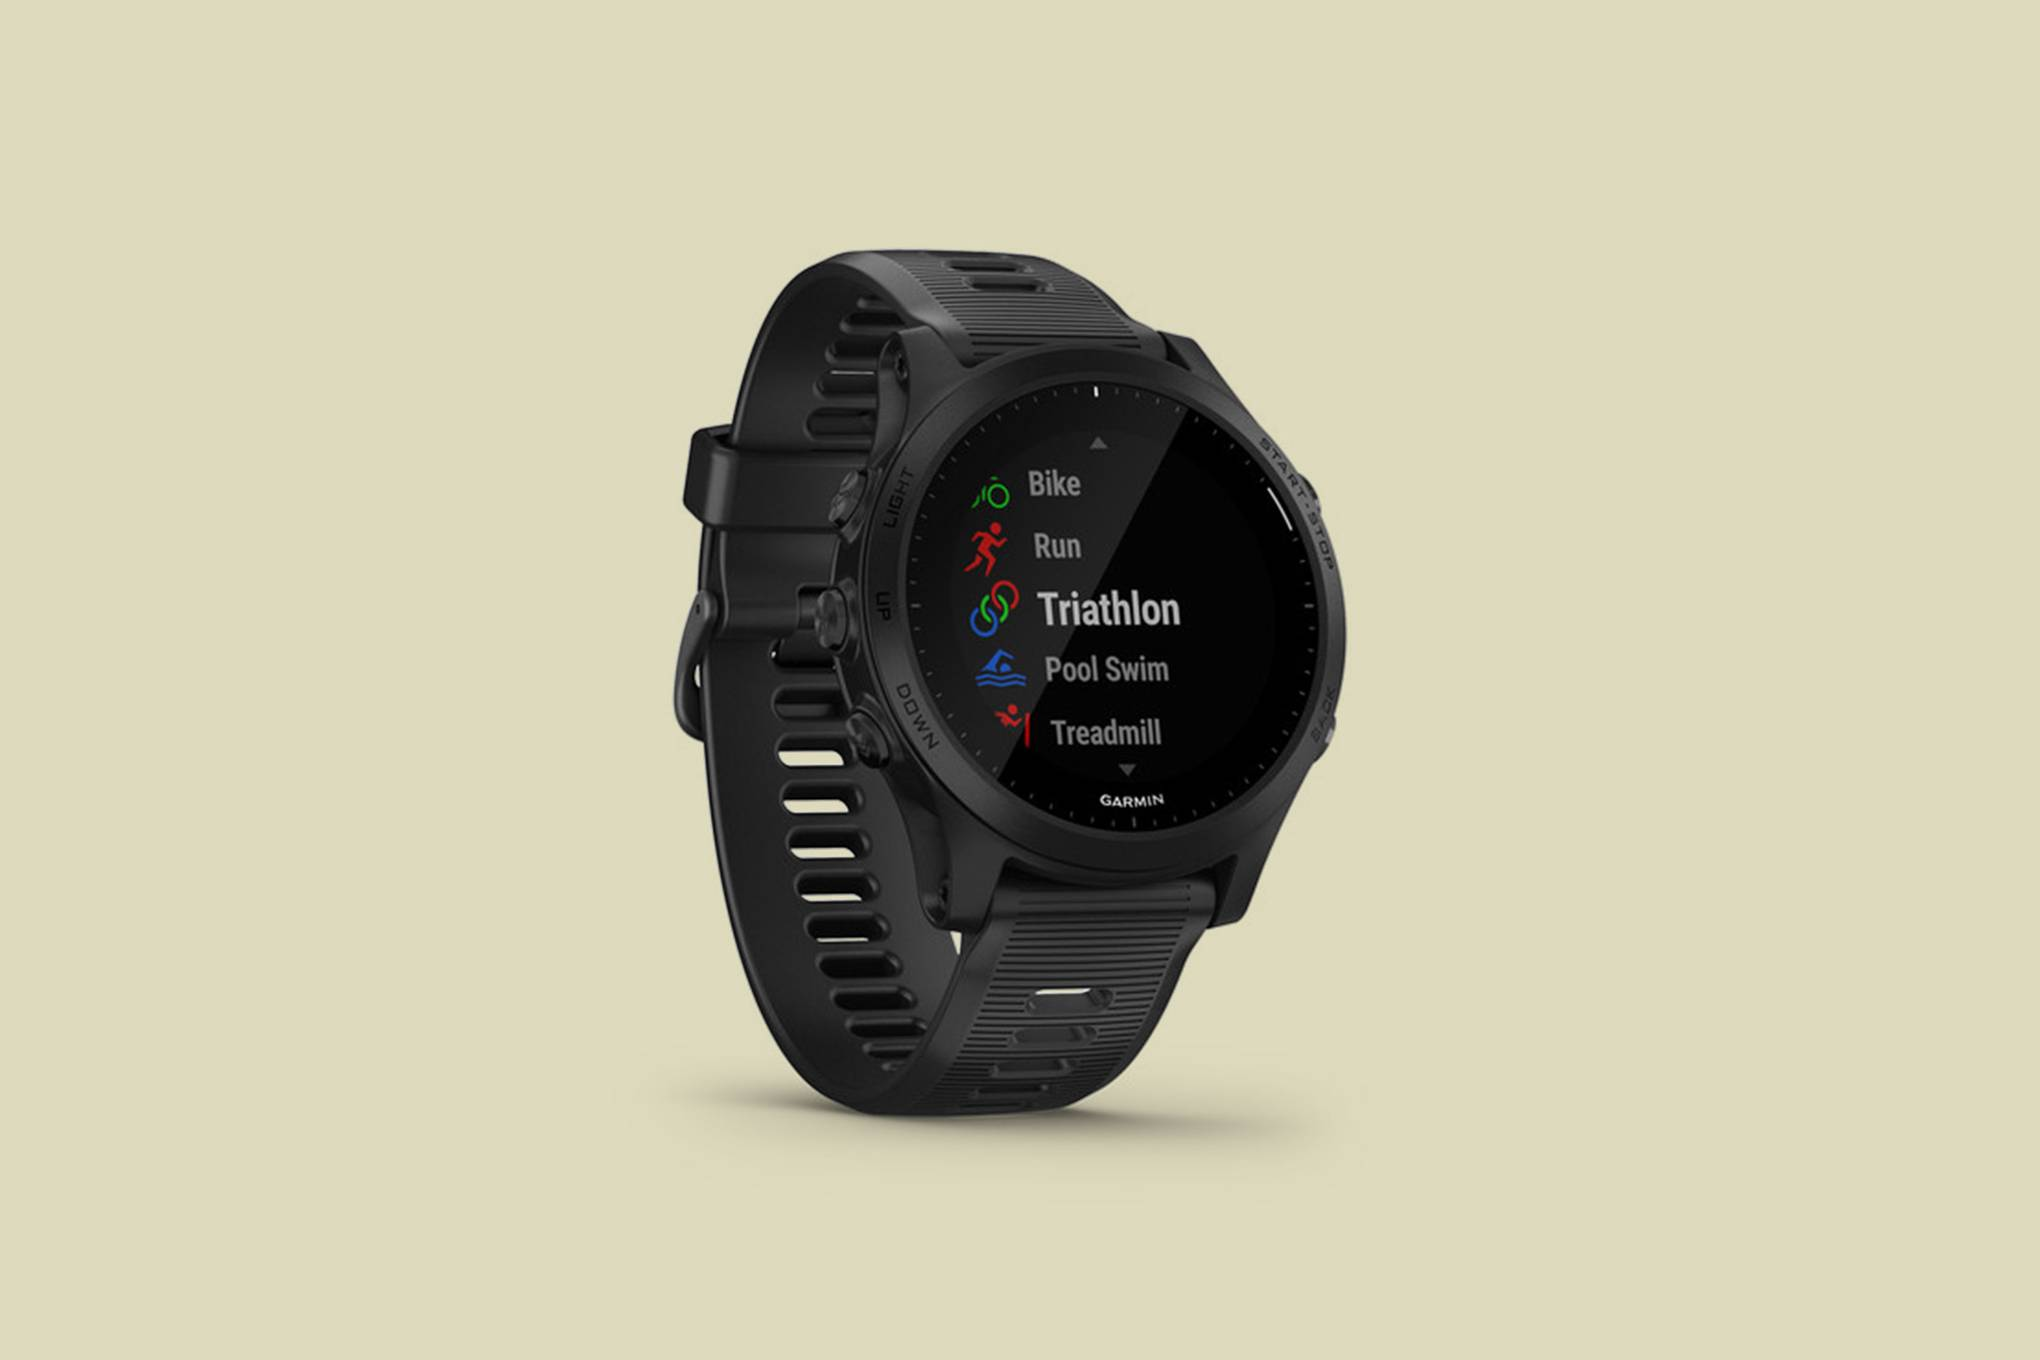 Best Smartwatch 2019: The best smartwatches for Android and iPhone